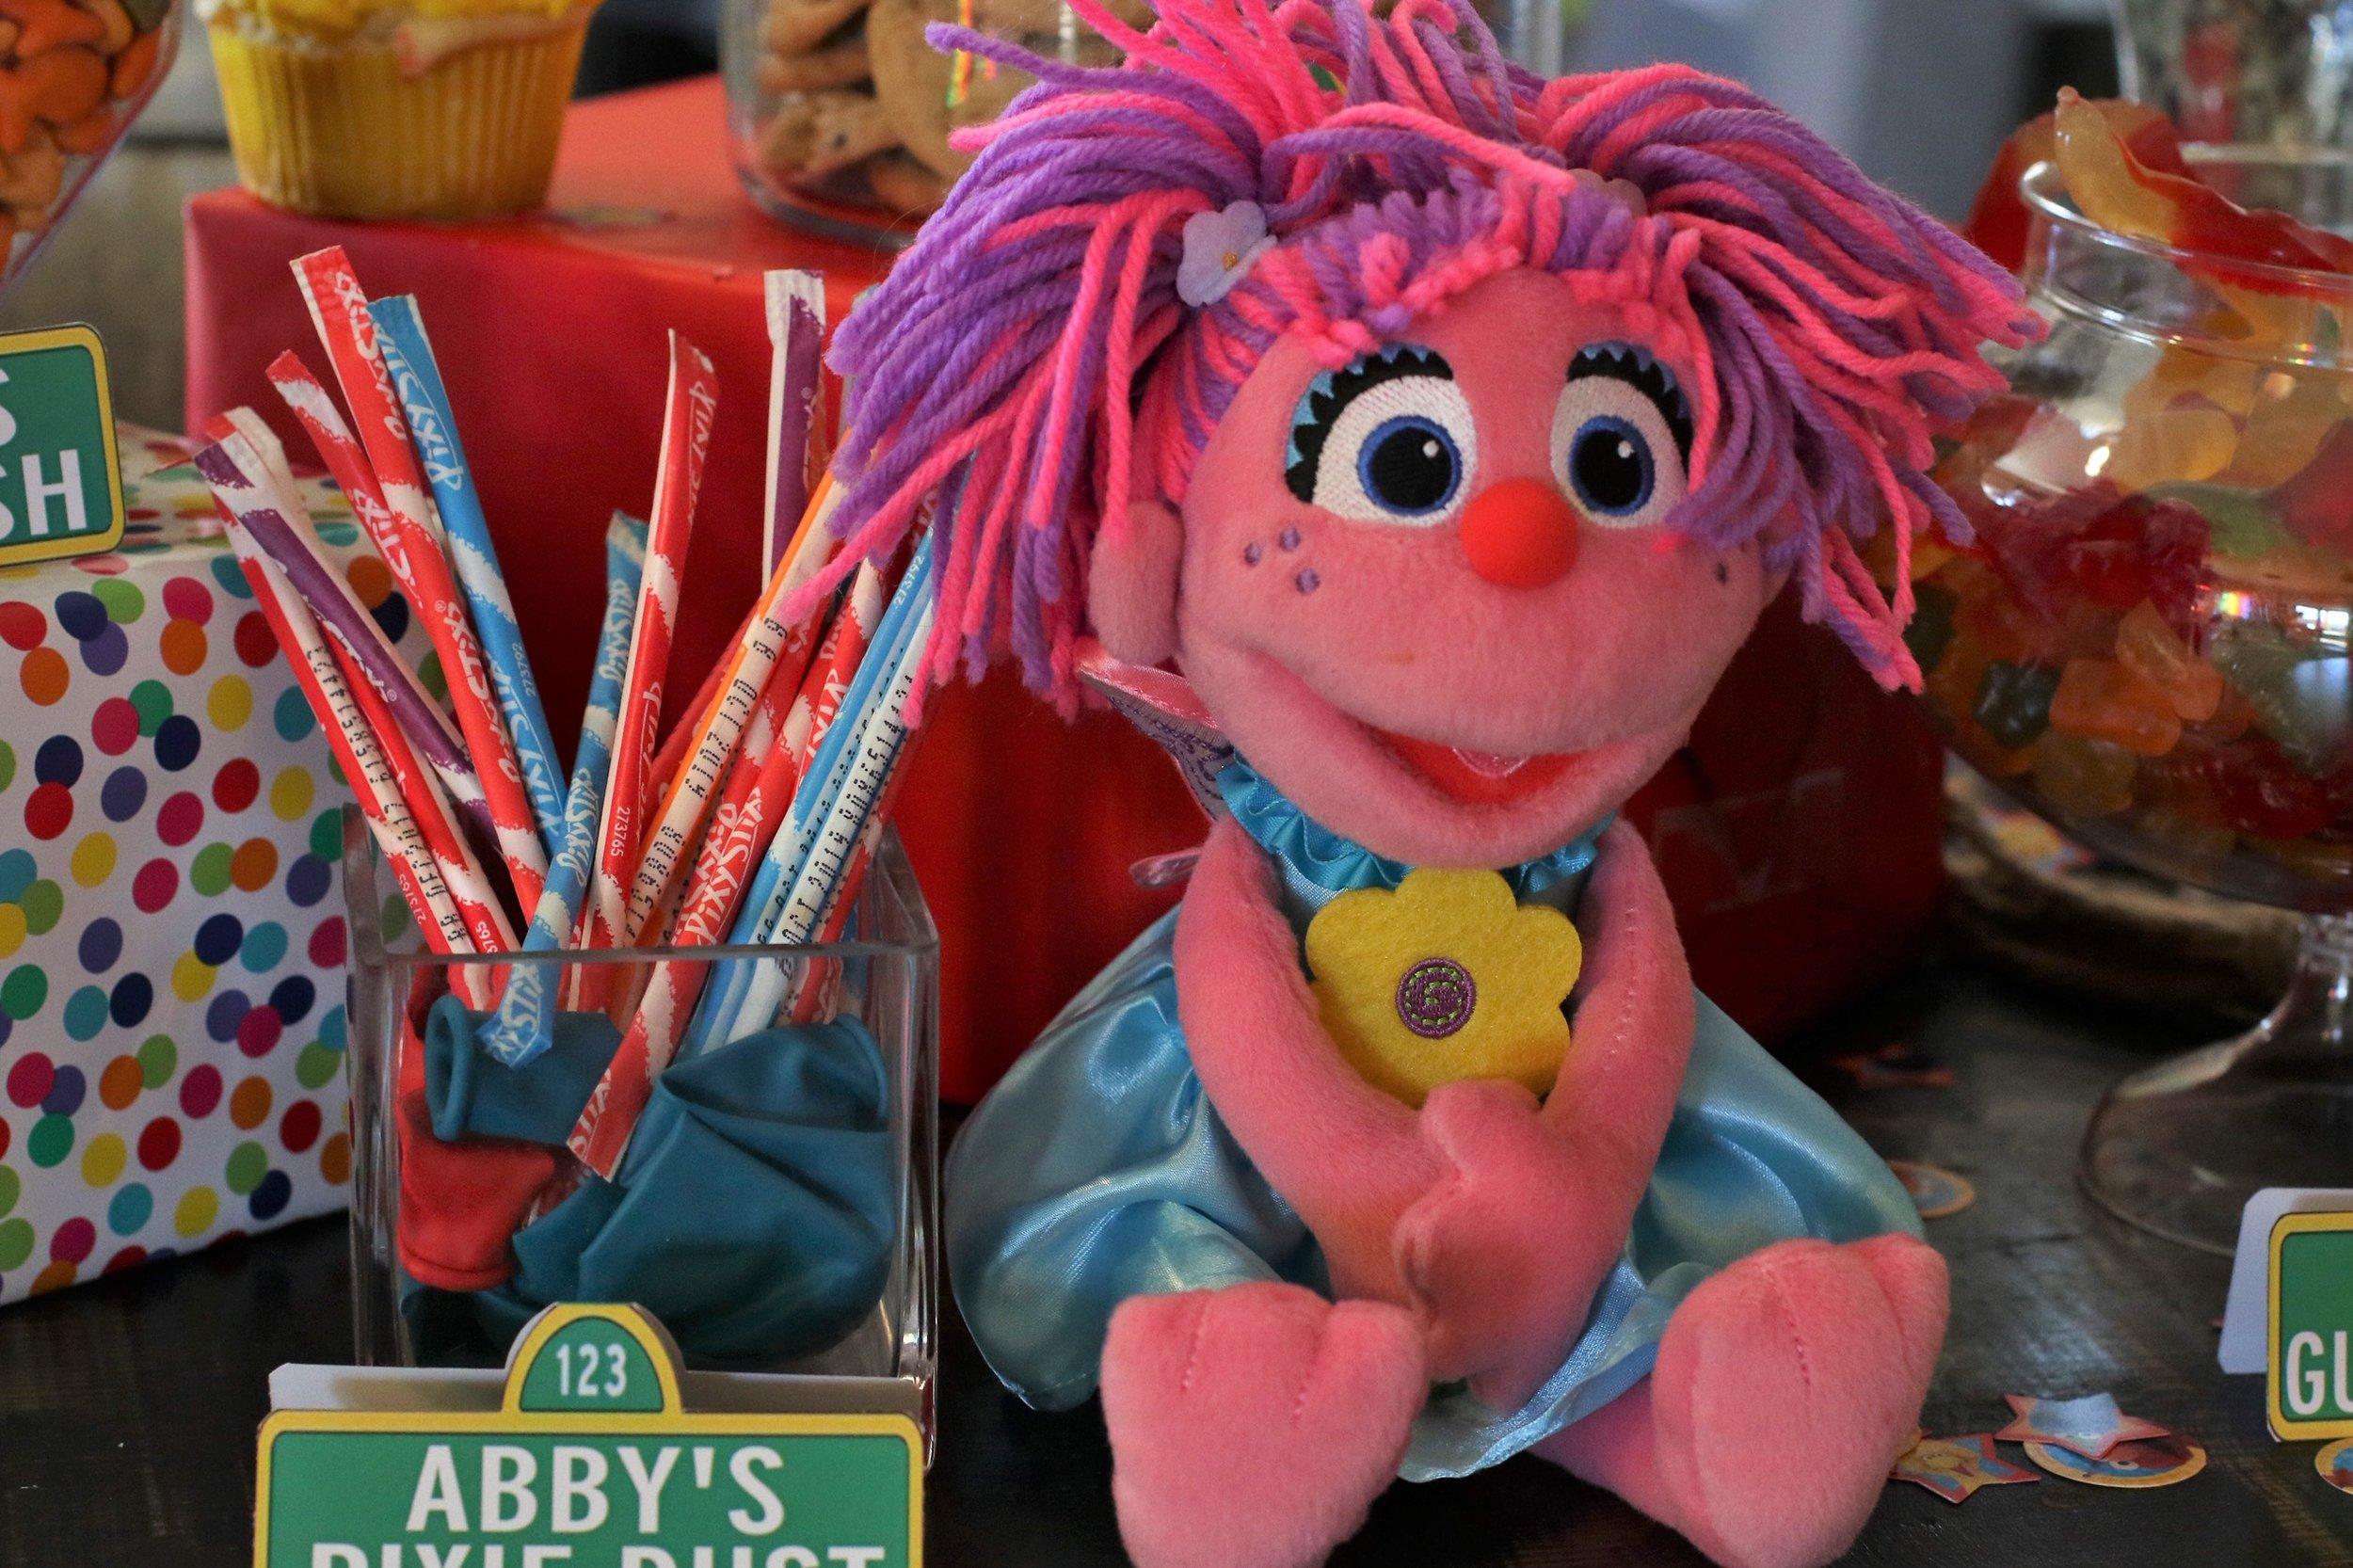 Abby with her Pixie Stix on the Candy Table.